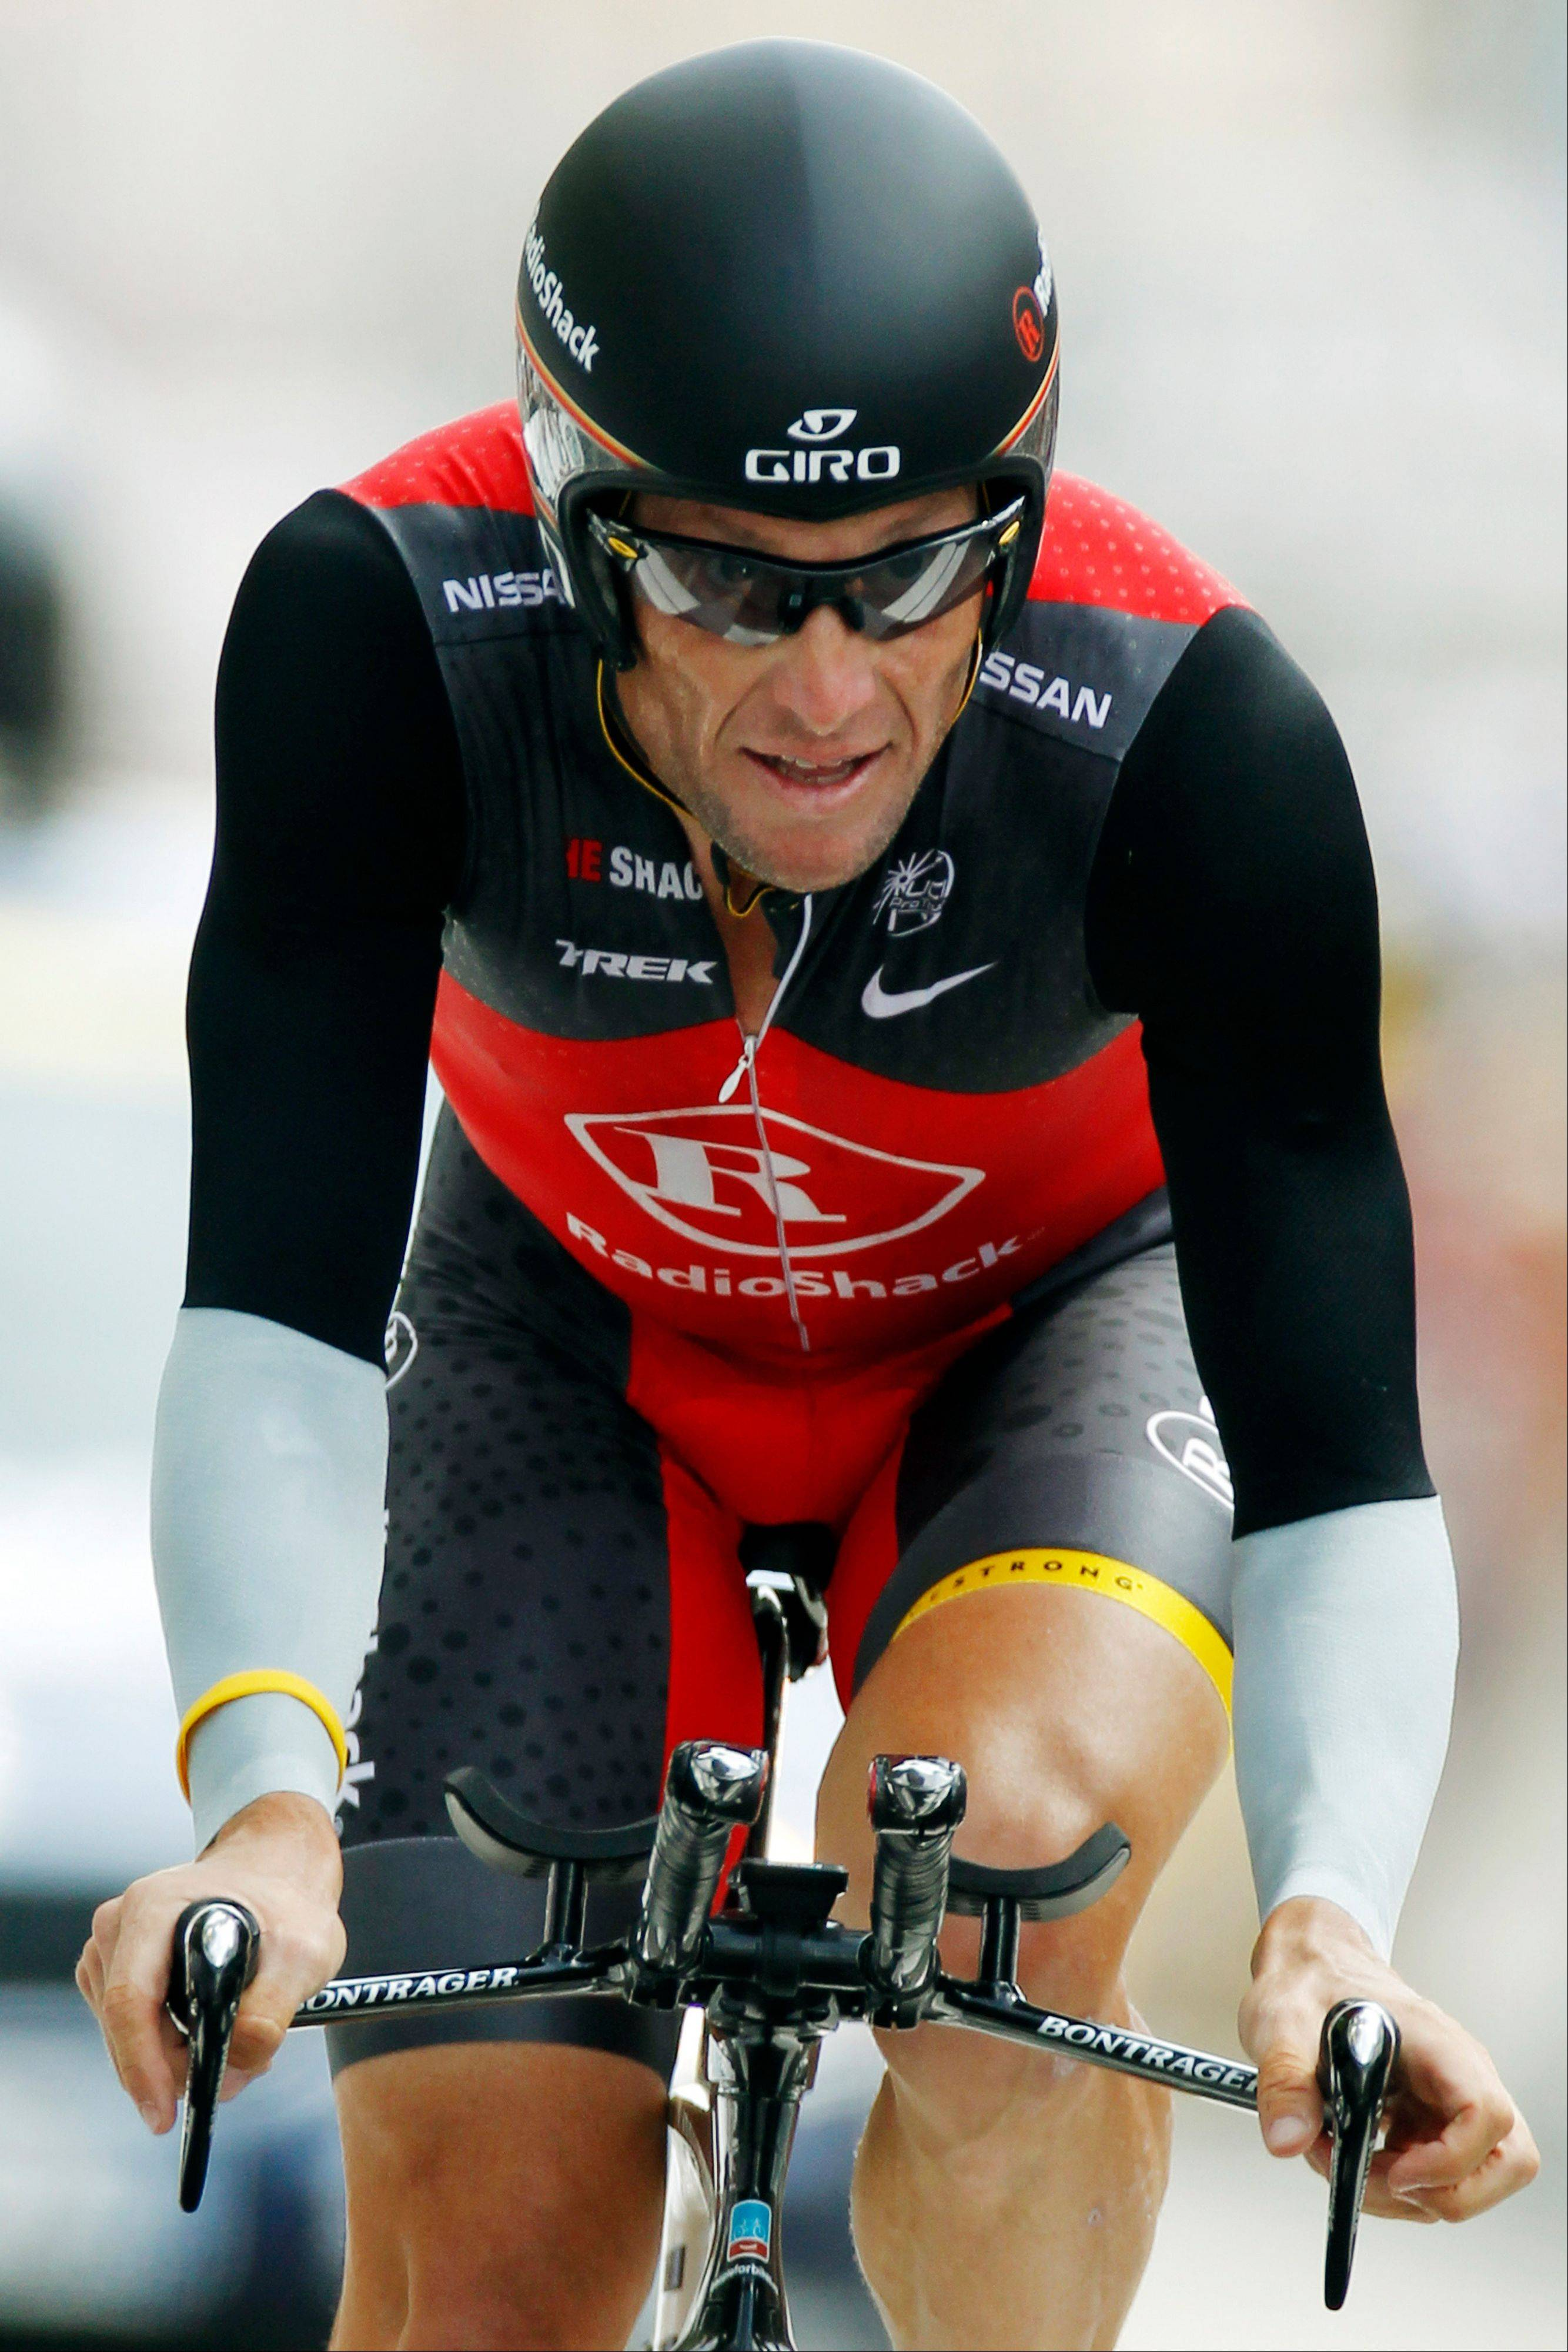 In this July 24, 2010, file photo, Lance Armstrong crosses the finish line during the 19th stage of the Tour de France cycling race, an individual time trial over 52 kilometers (32.3 miles), with a start in Bordeaux and finish in Pauillac, south western France.